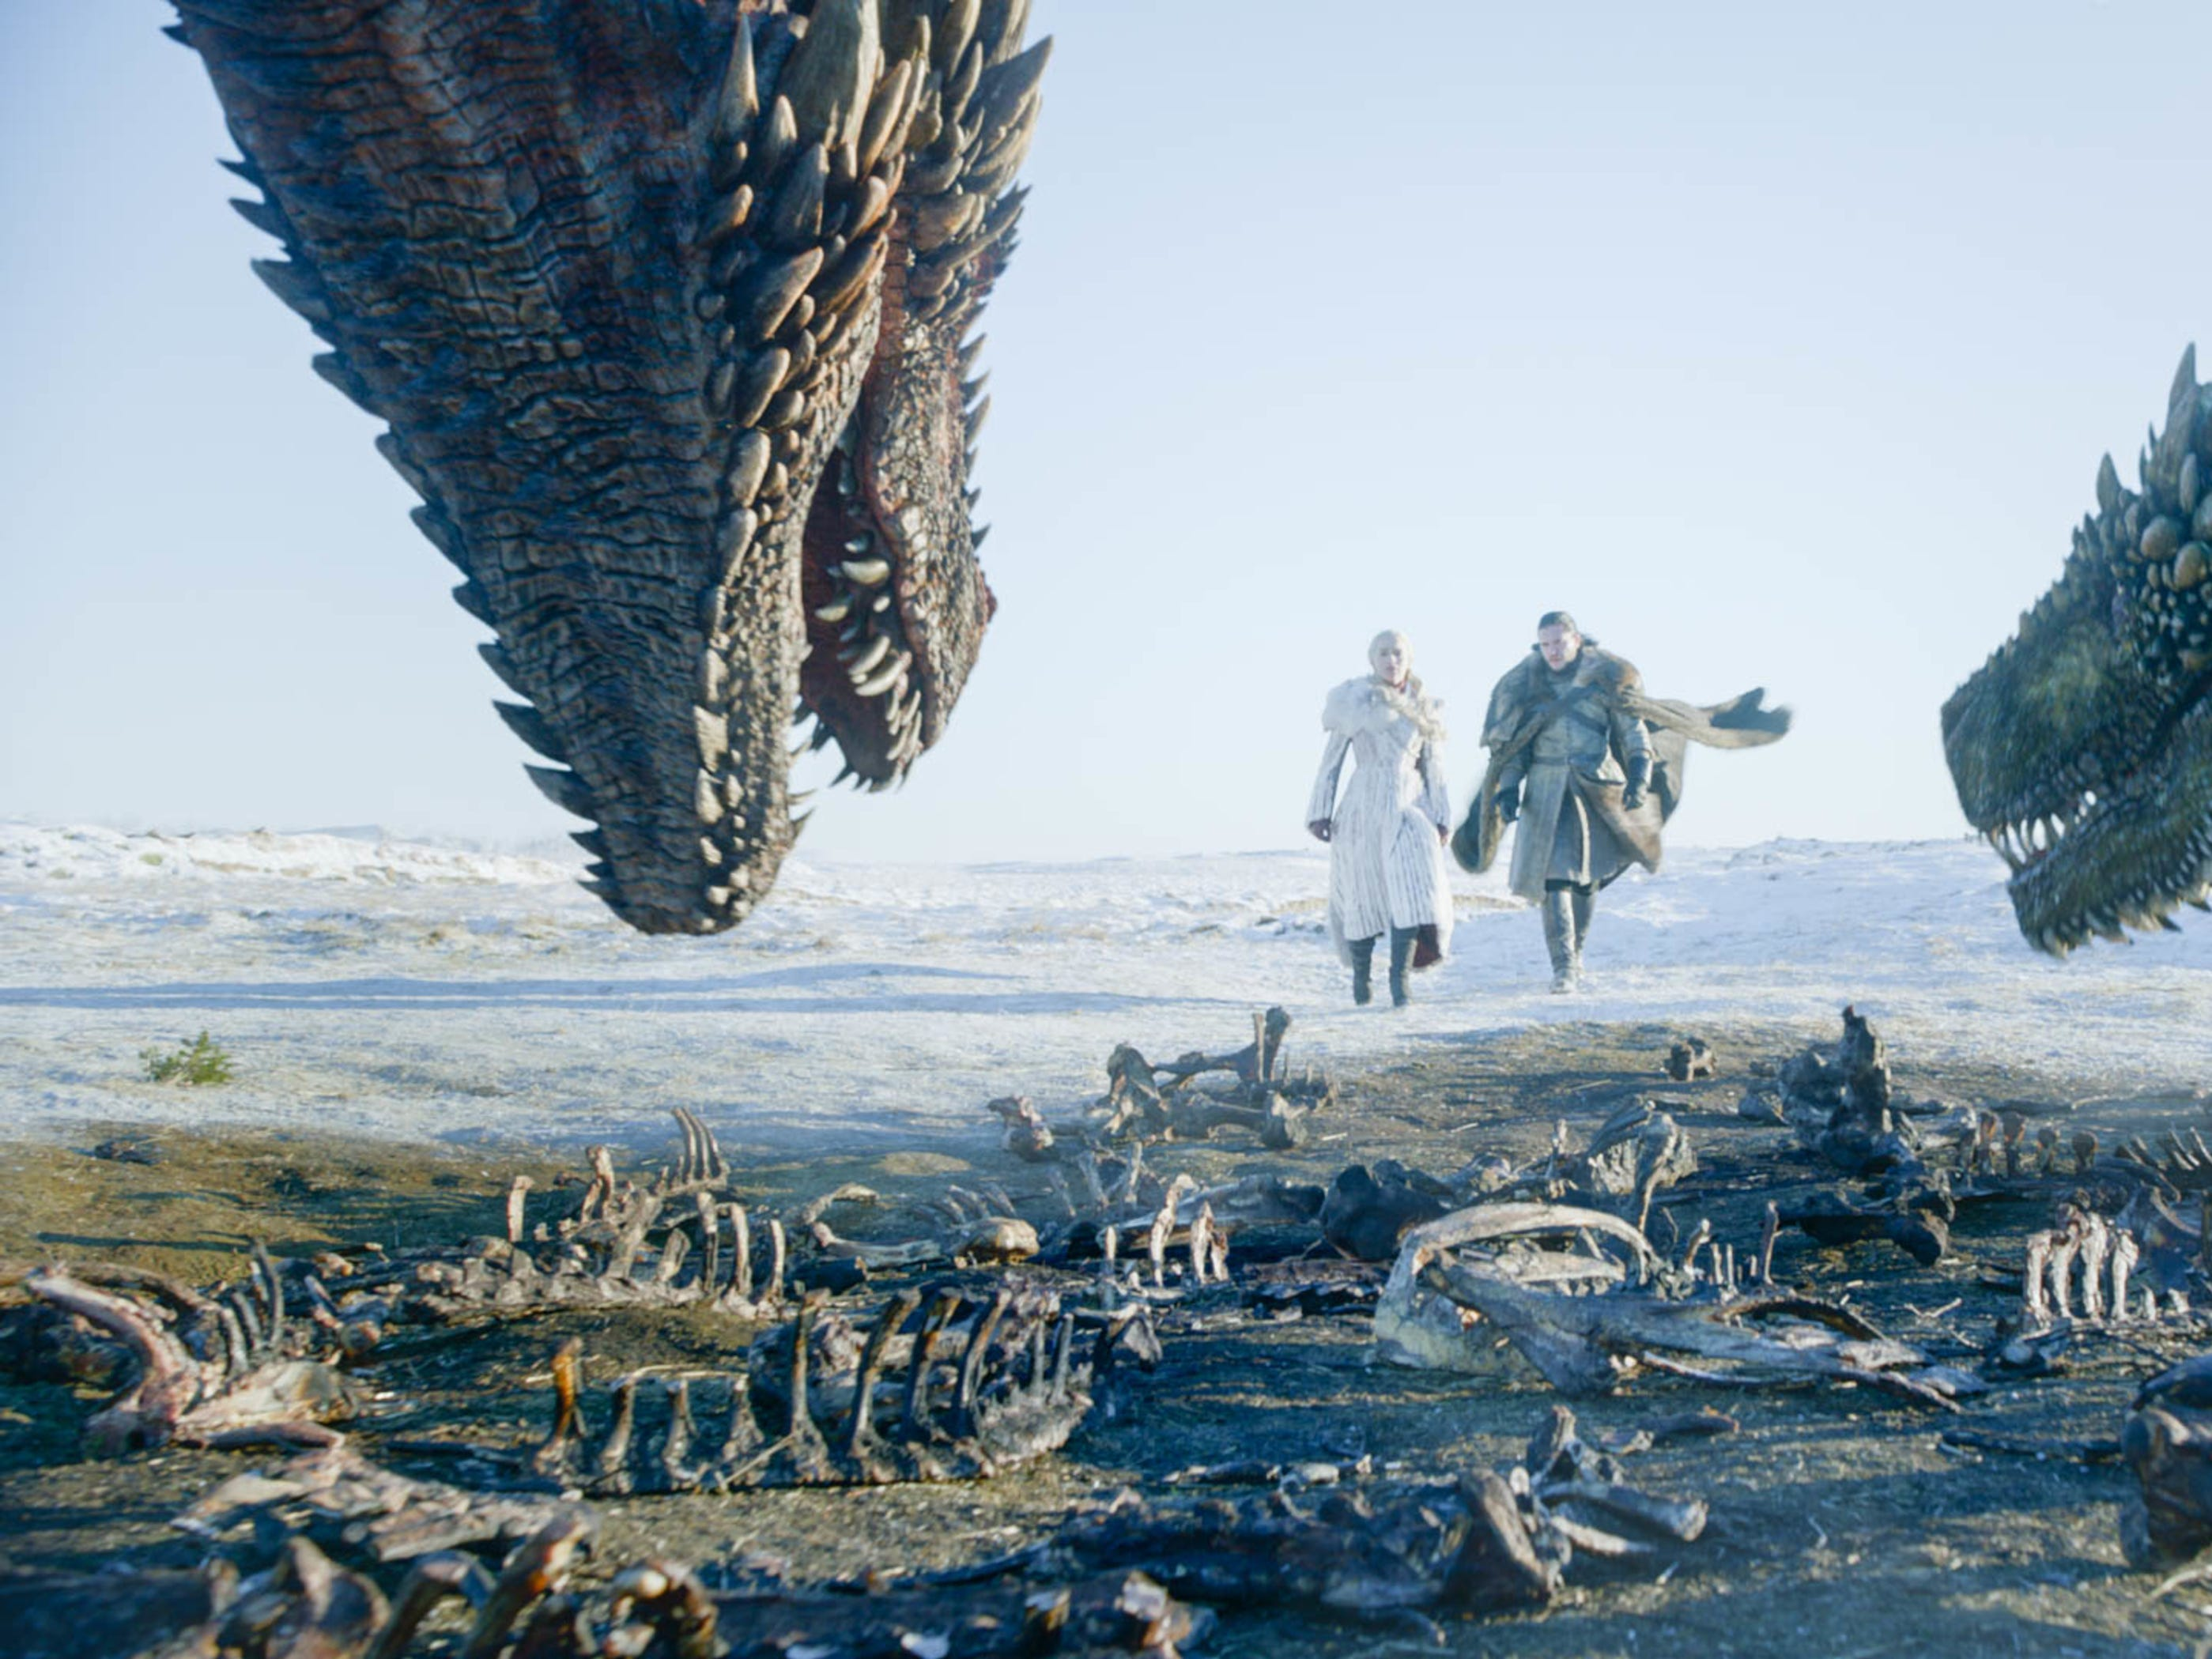 Daenerys Targaryen (Emilia Clarke) and Jon Snow (Kit Harington) visit her dragons.